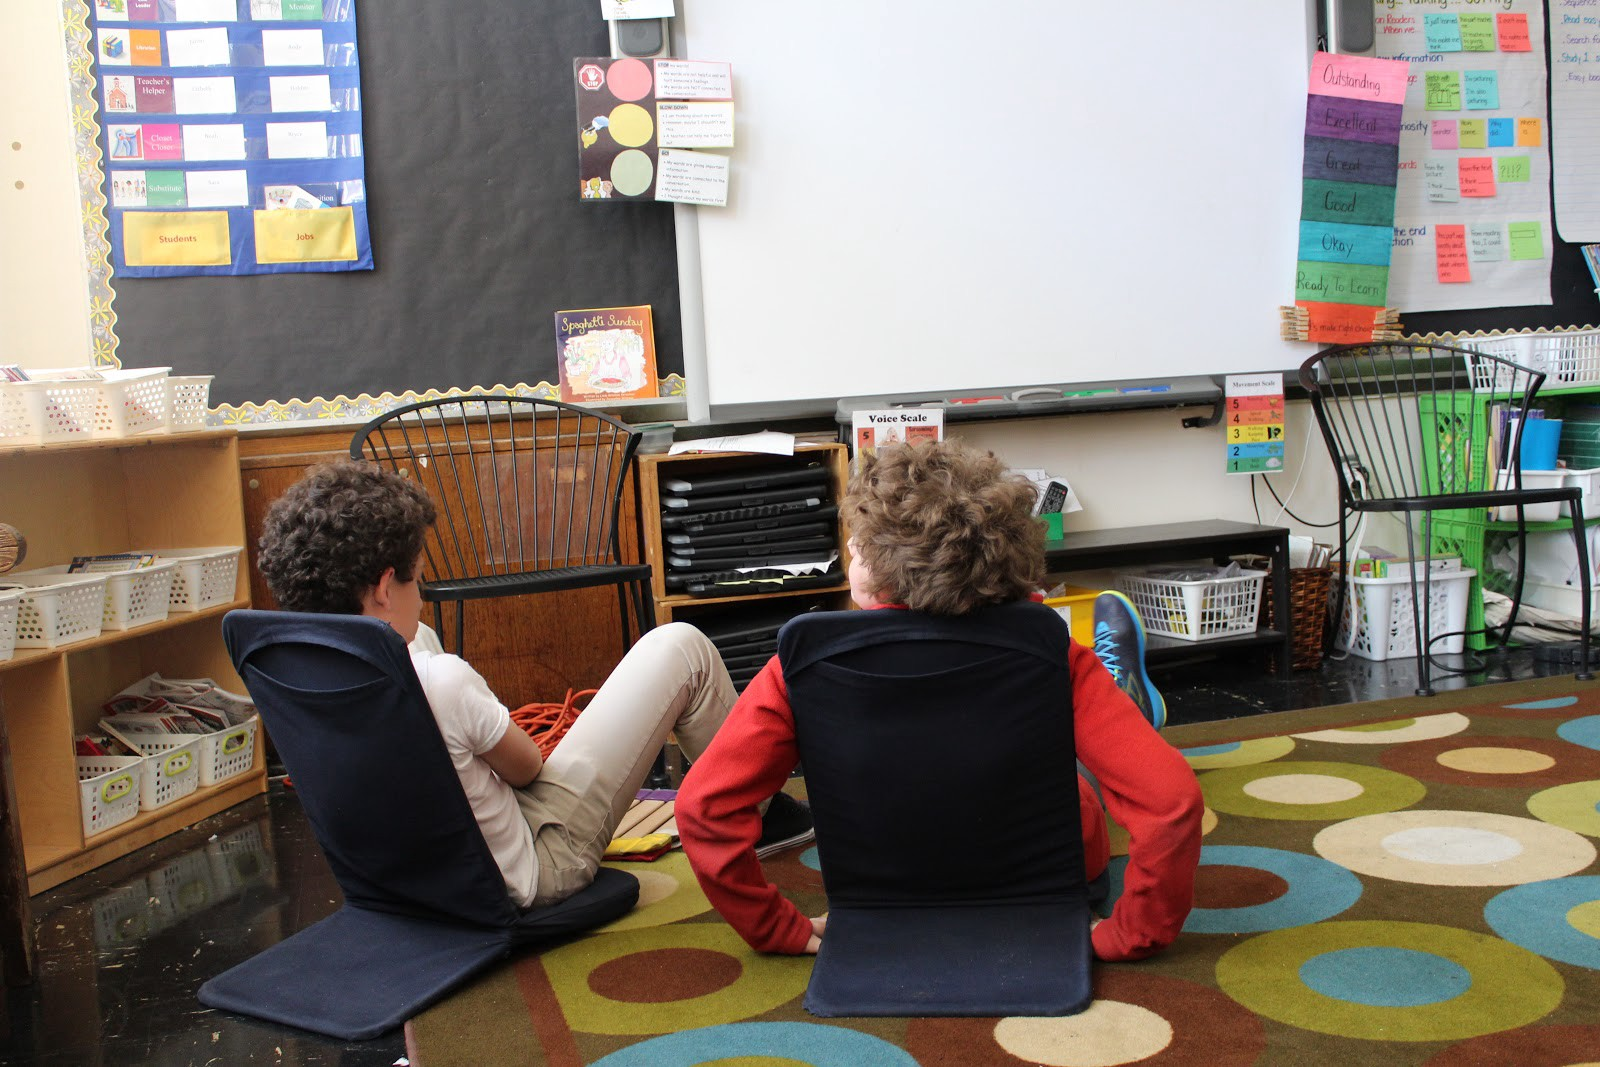 Learning Spaces For Mindfulness Room2learn Medium